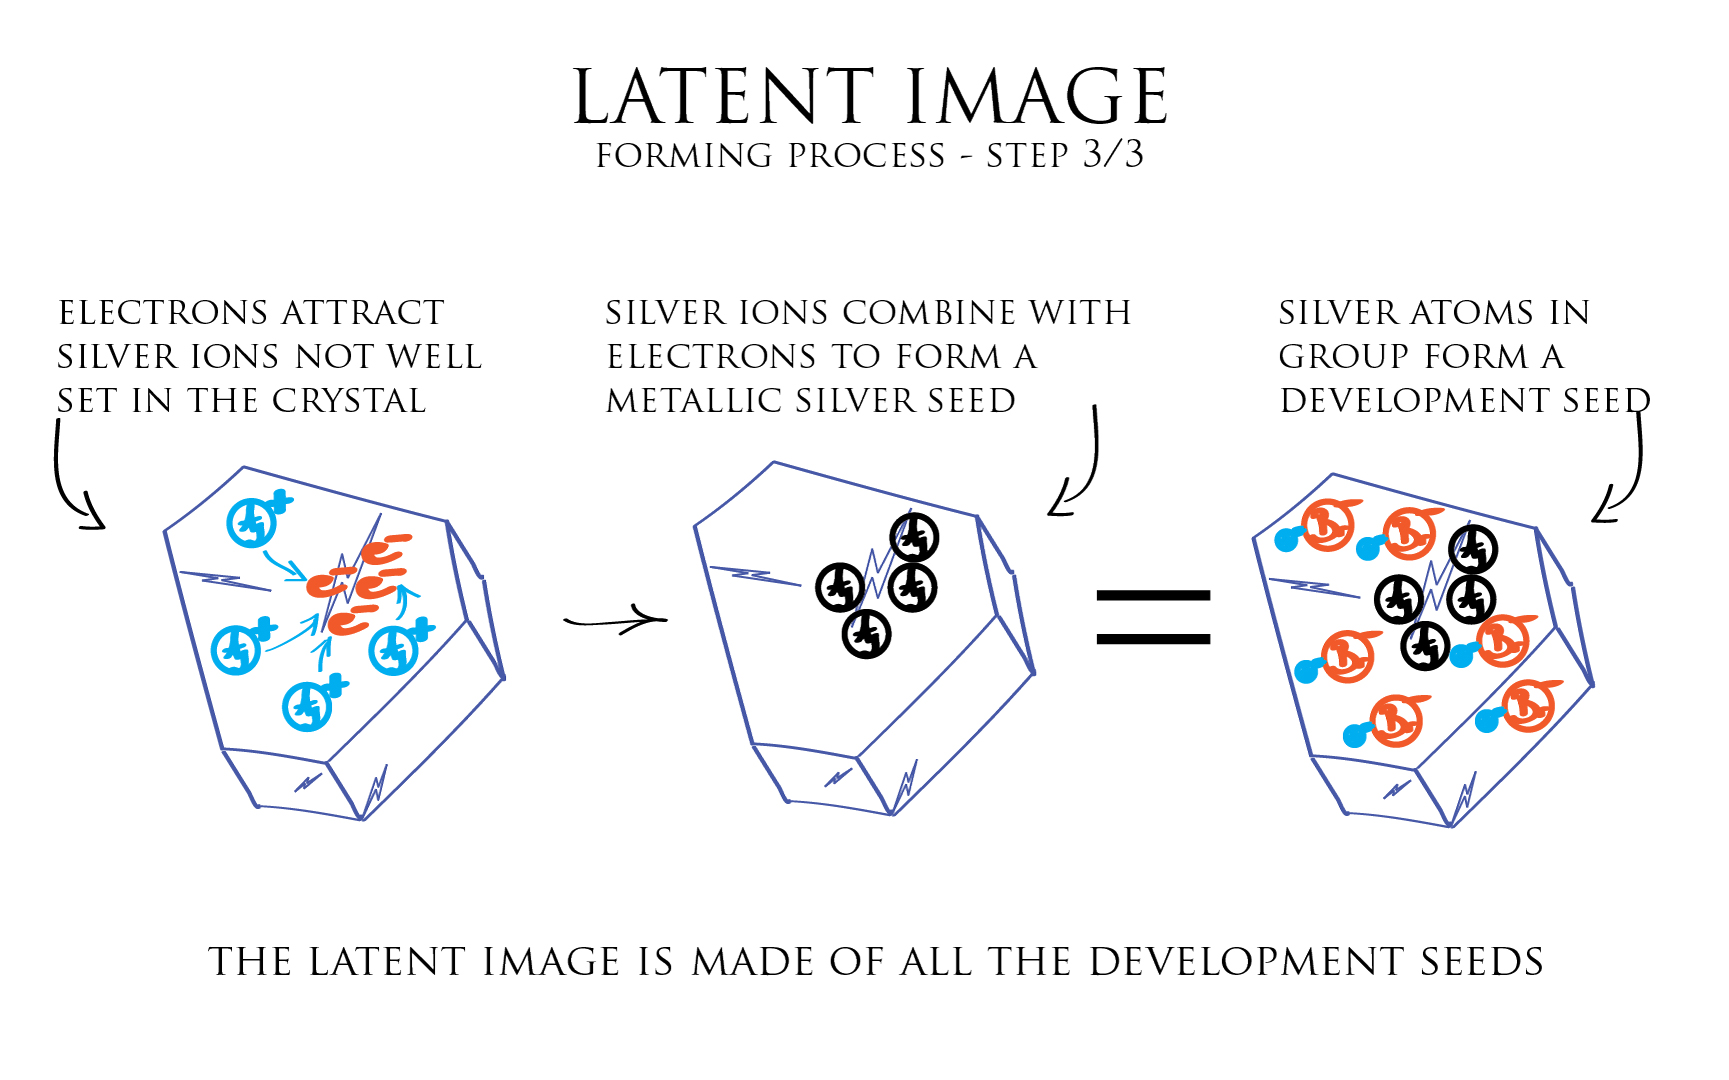 Illustration: latent image forming process 3-3